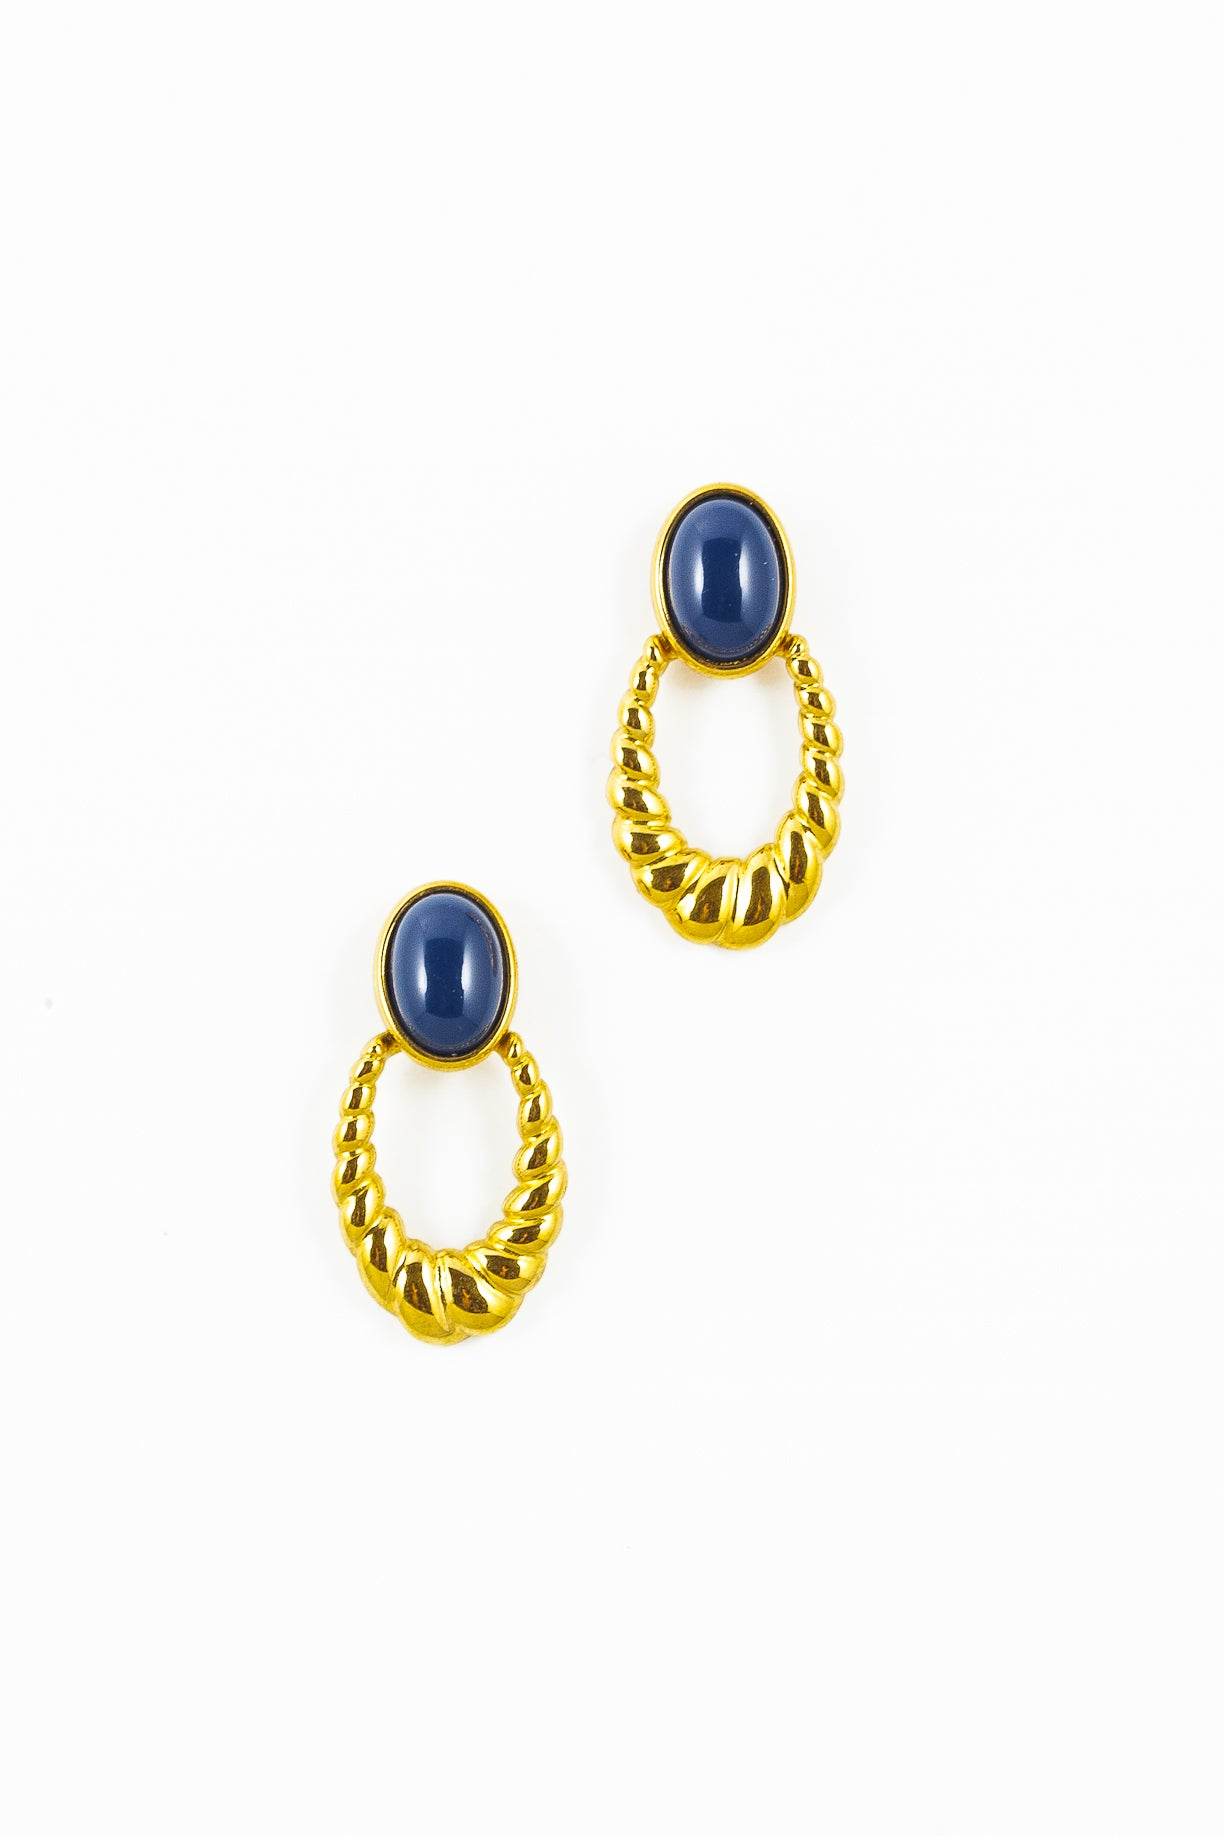 80's__Monet__Navy Dot Rope Earrings